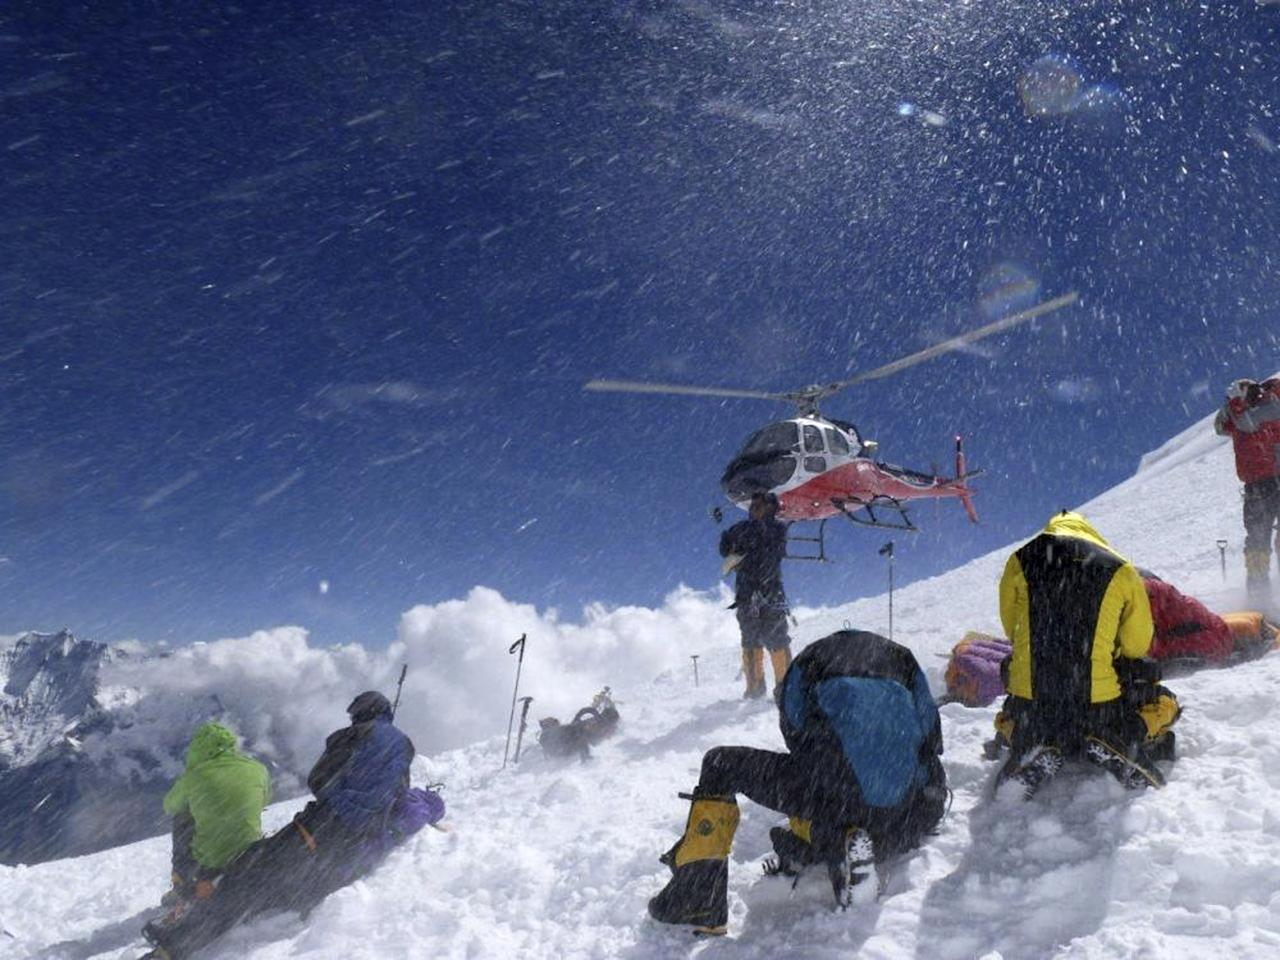 In this picture taken Sunday, Sept. 23, 2012 and released by Alpine Ascents International, a helicopter lifts off carrying survivors from the debris field of an avalanche on Mount Manaslu in northern Nepal. Rescue helicopters flew over the high slopes of the northern Nepal peak again Monday to search for climbers lost in an avalanche that killed at least nine mountaineers and injured others. Many of the climbers were French, German and Italian. (AP Photo/Garrett Madison, Alpine Ascents International)